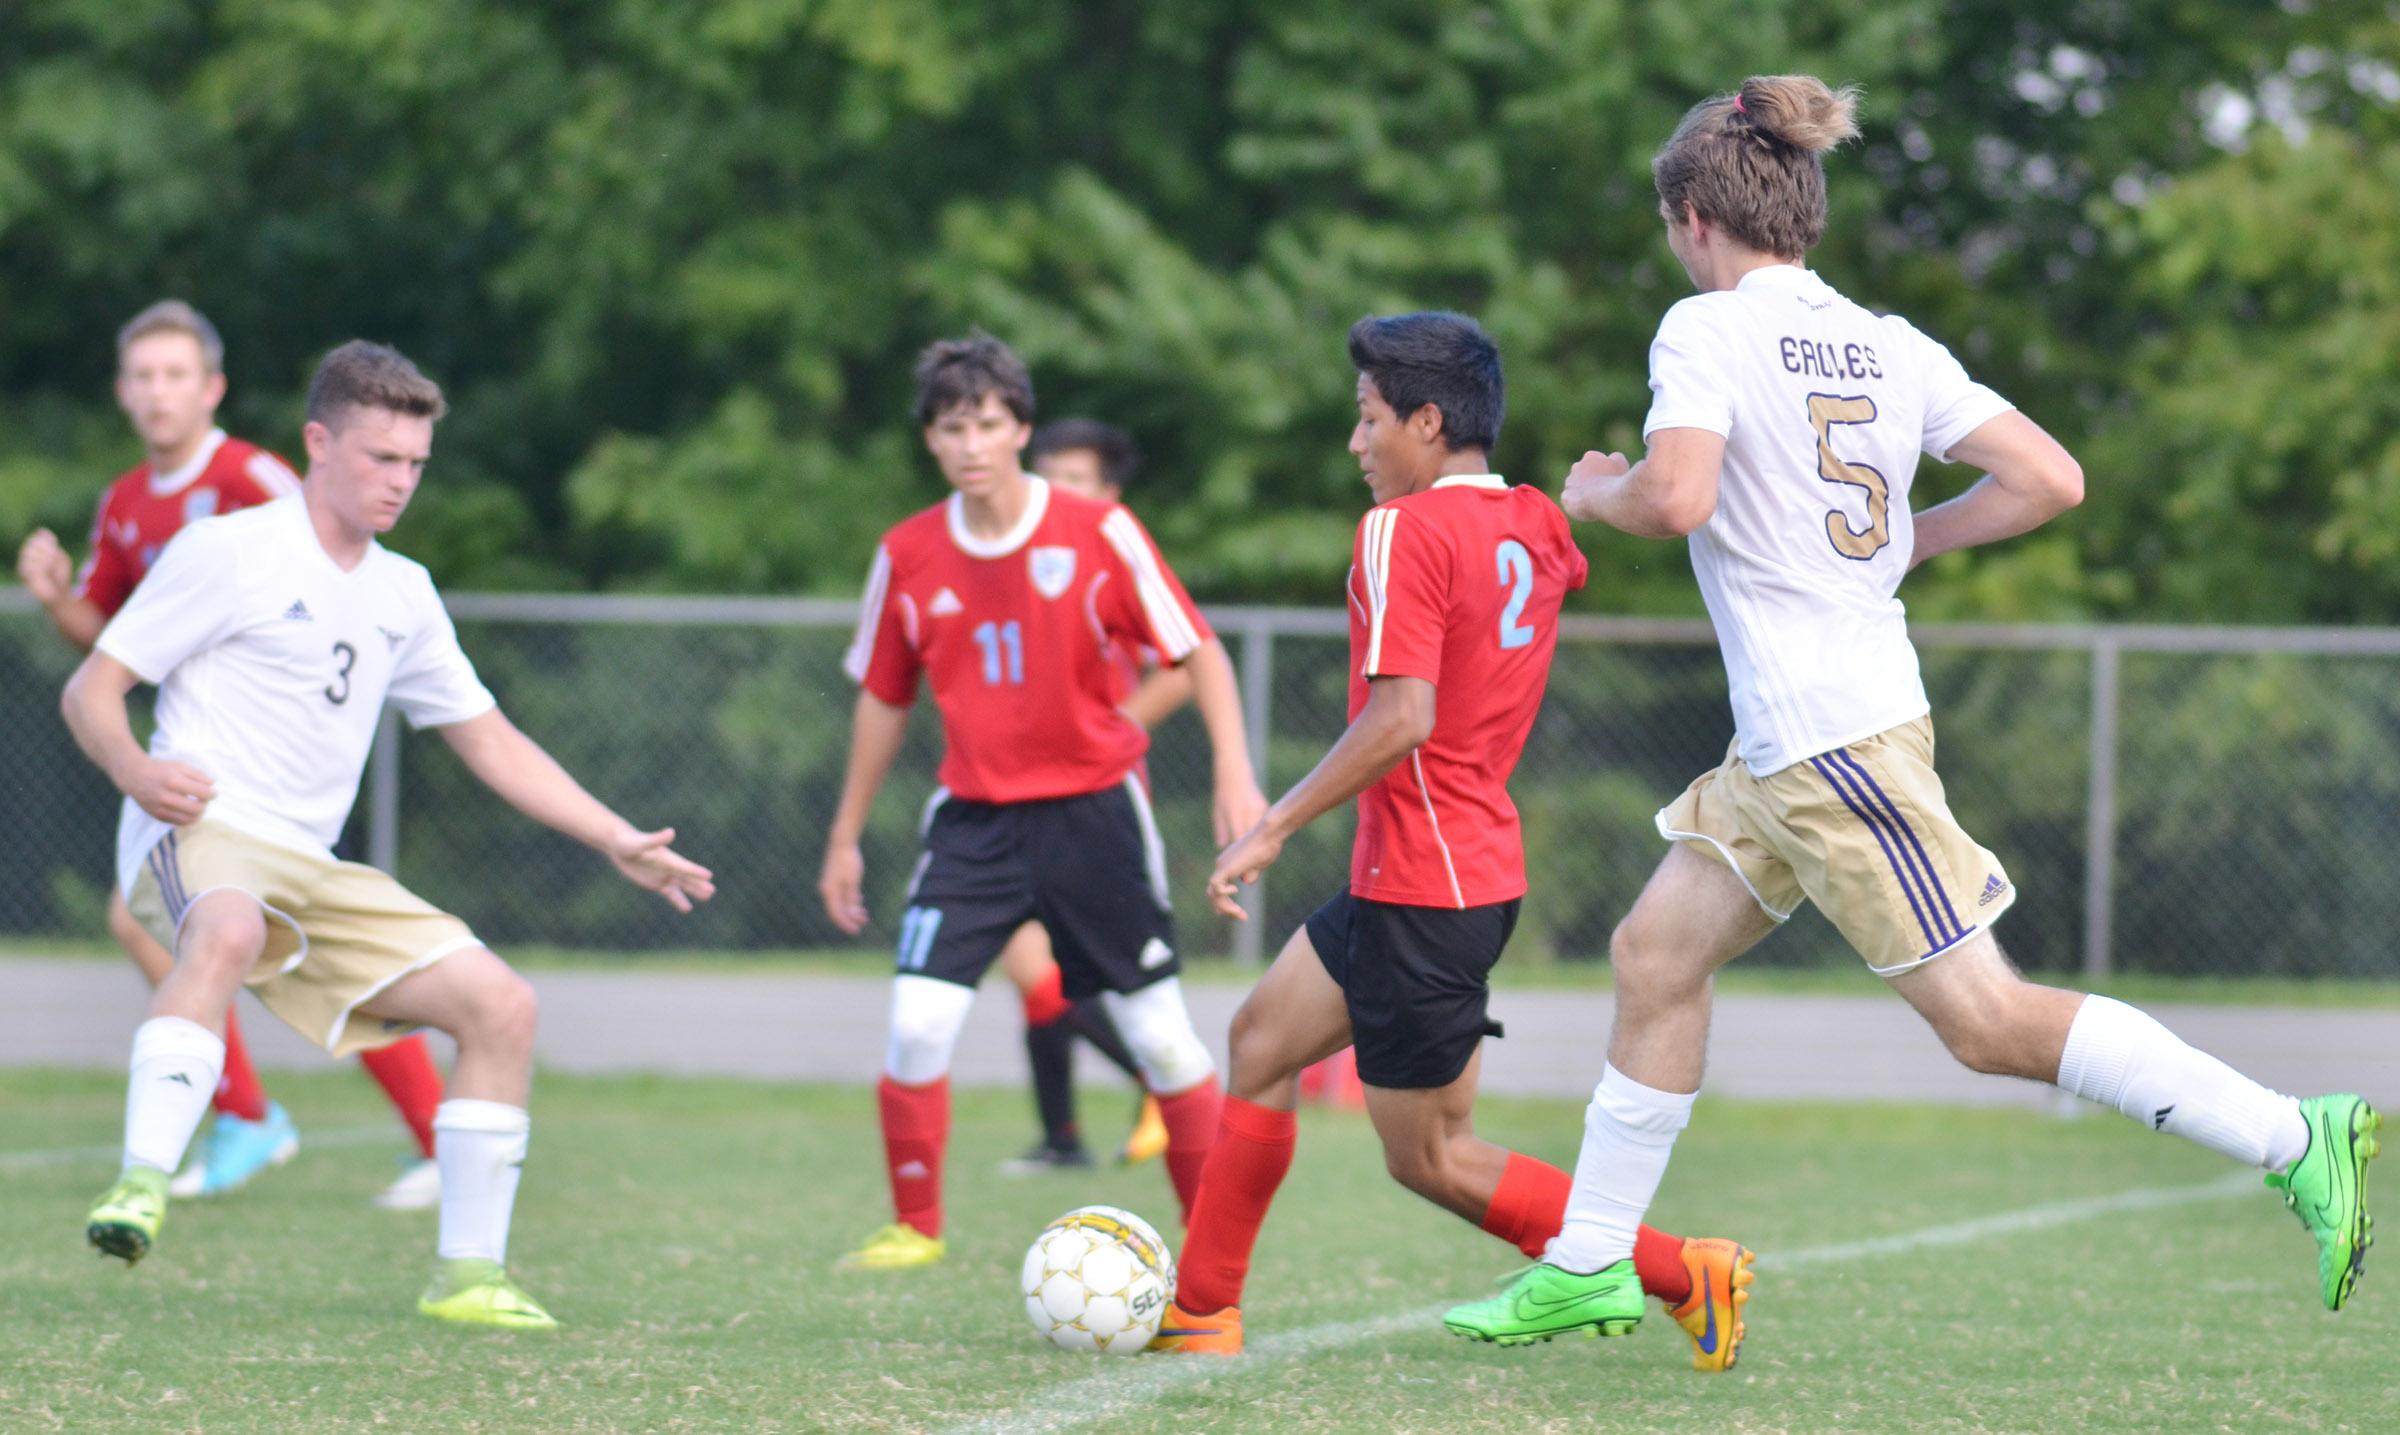 CHS seniors Bryce Richardson, at left, and Christian Berry play defense.